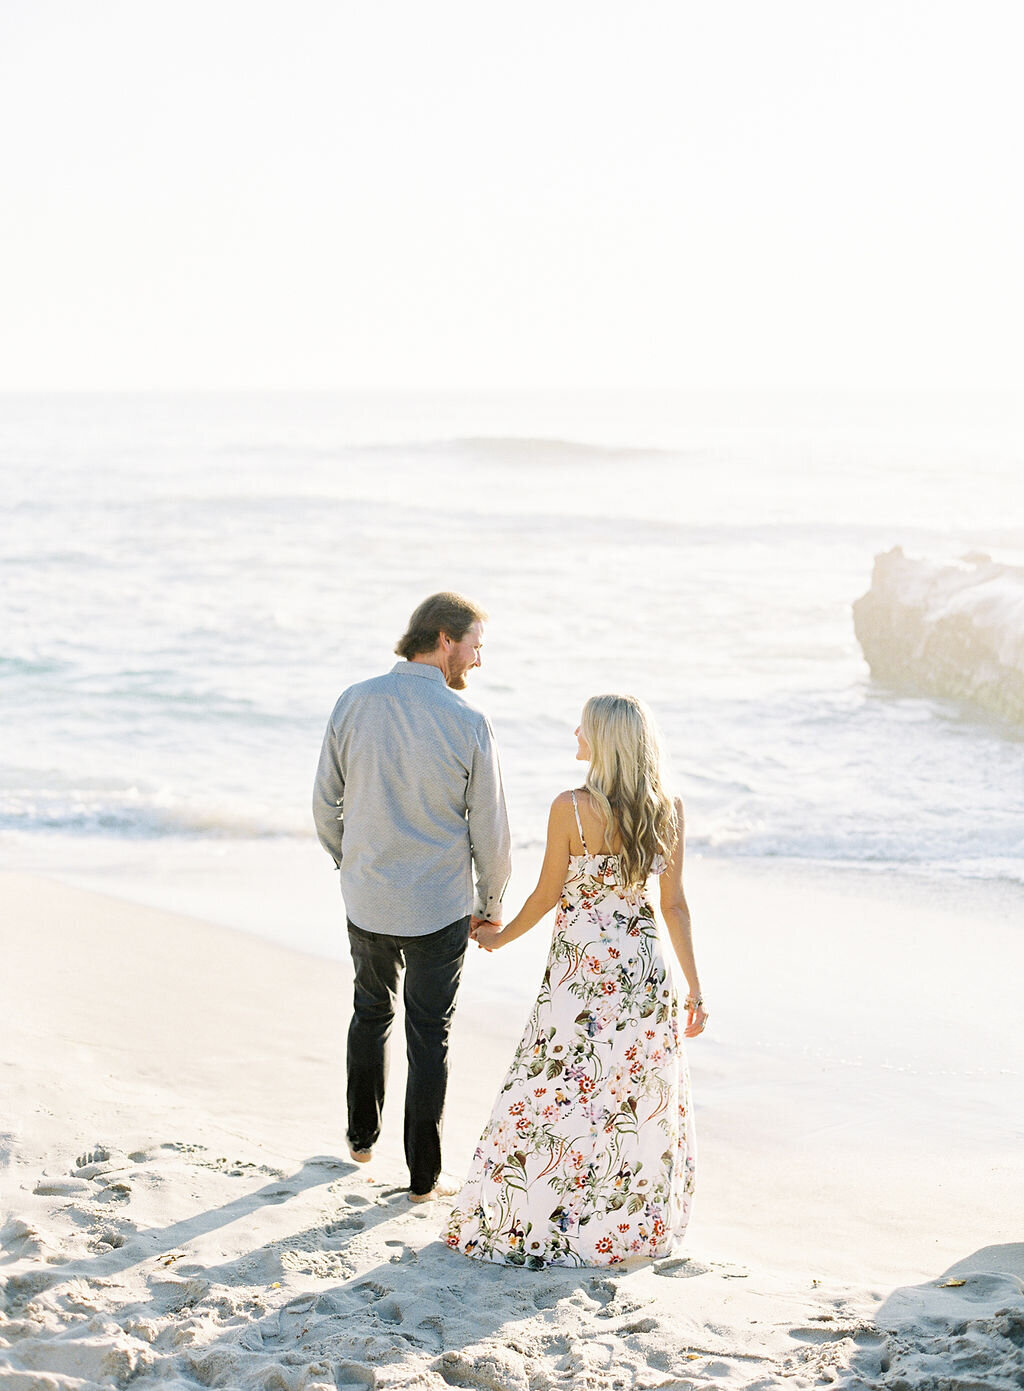 Danielle_Bacon_Photography_Wind_and_Sea_Beach_Engagement_Session8